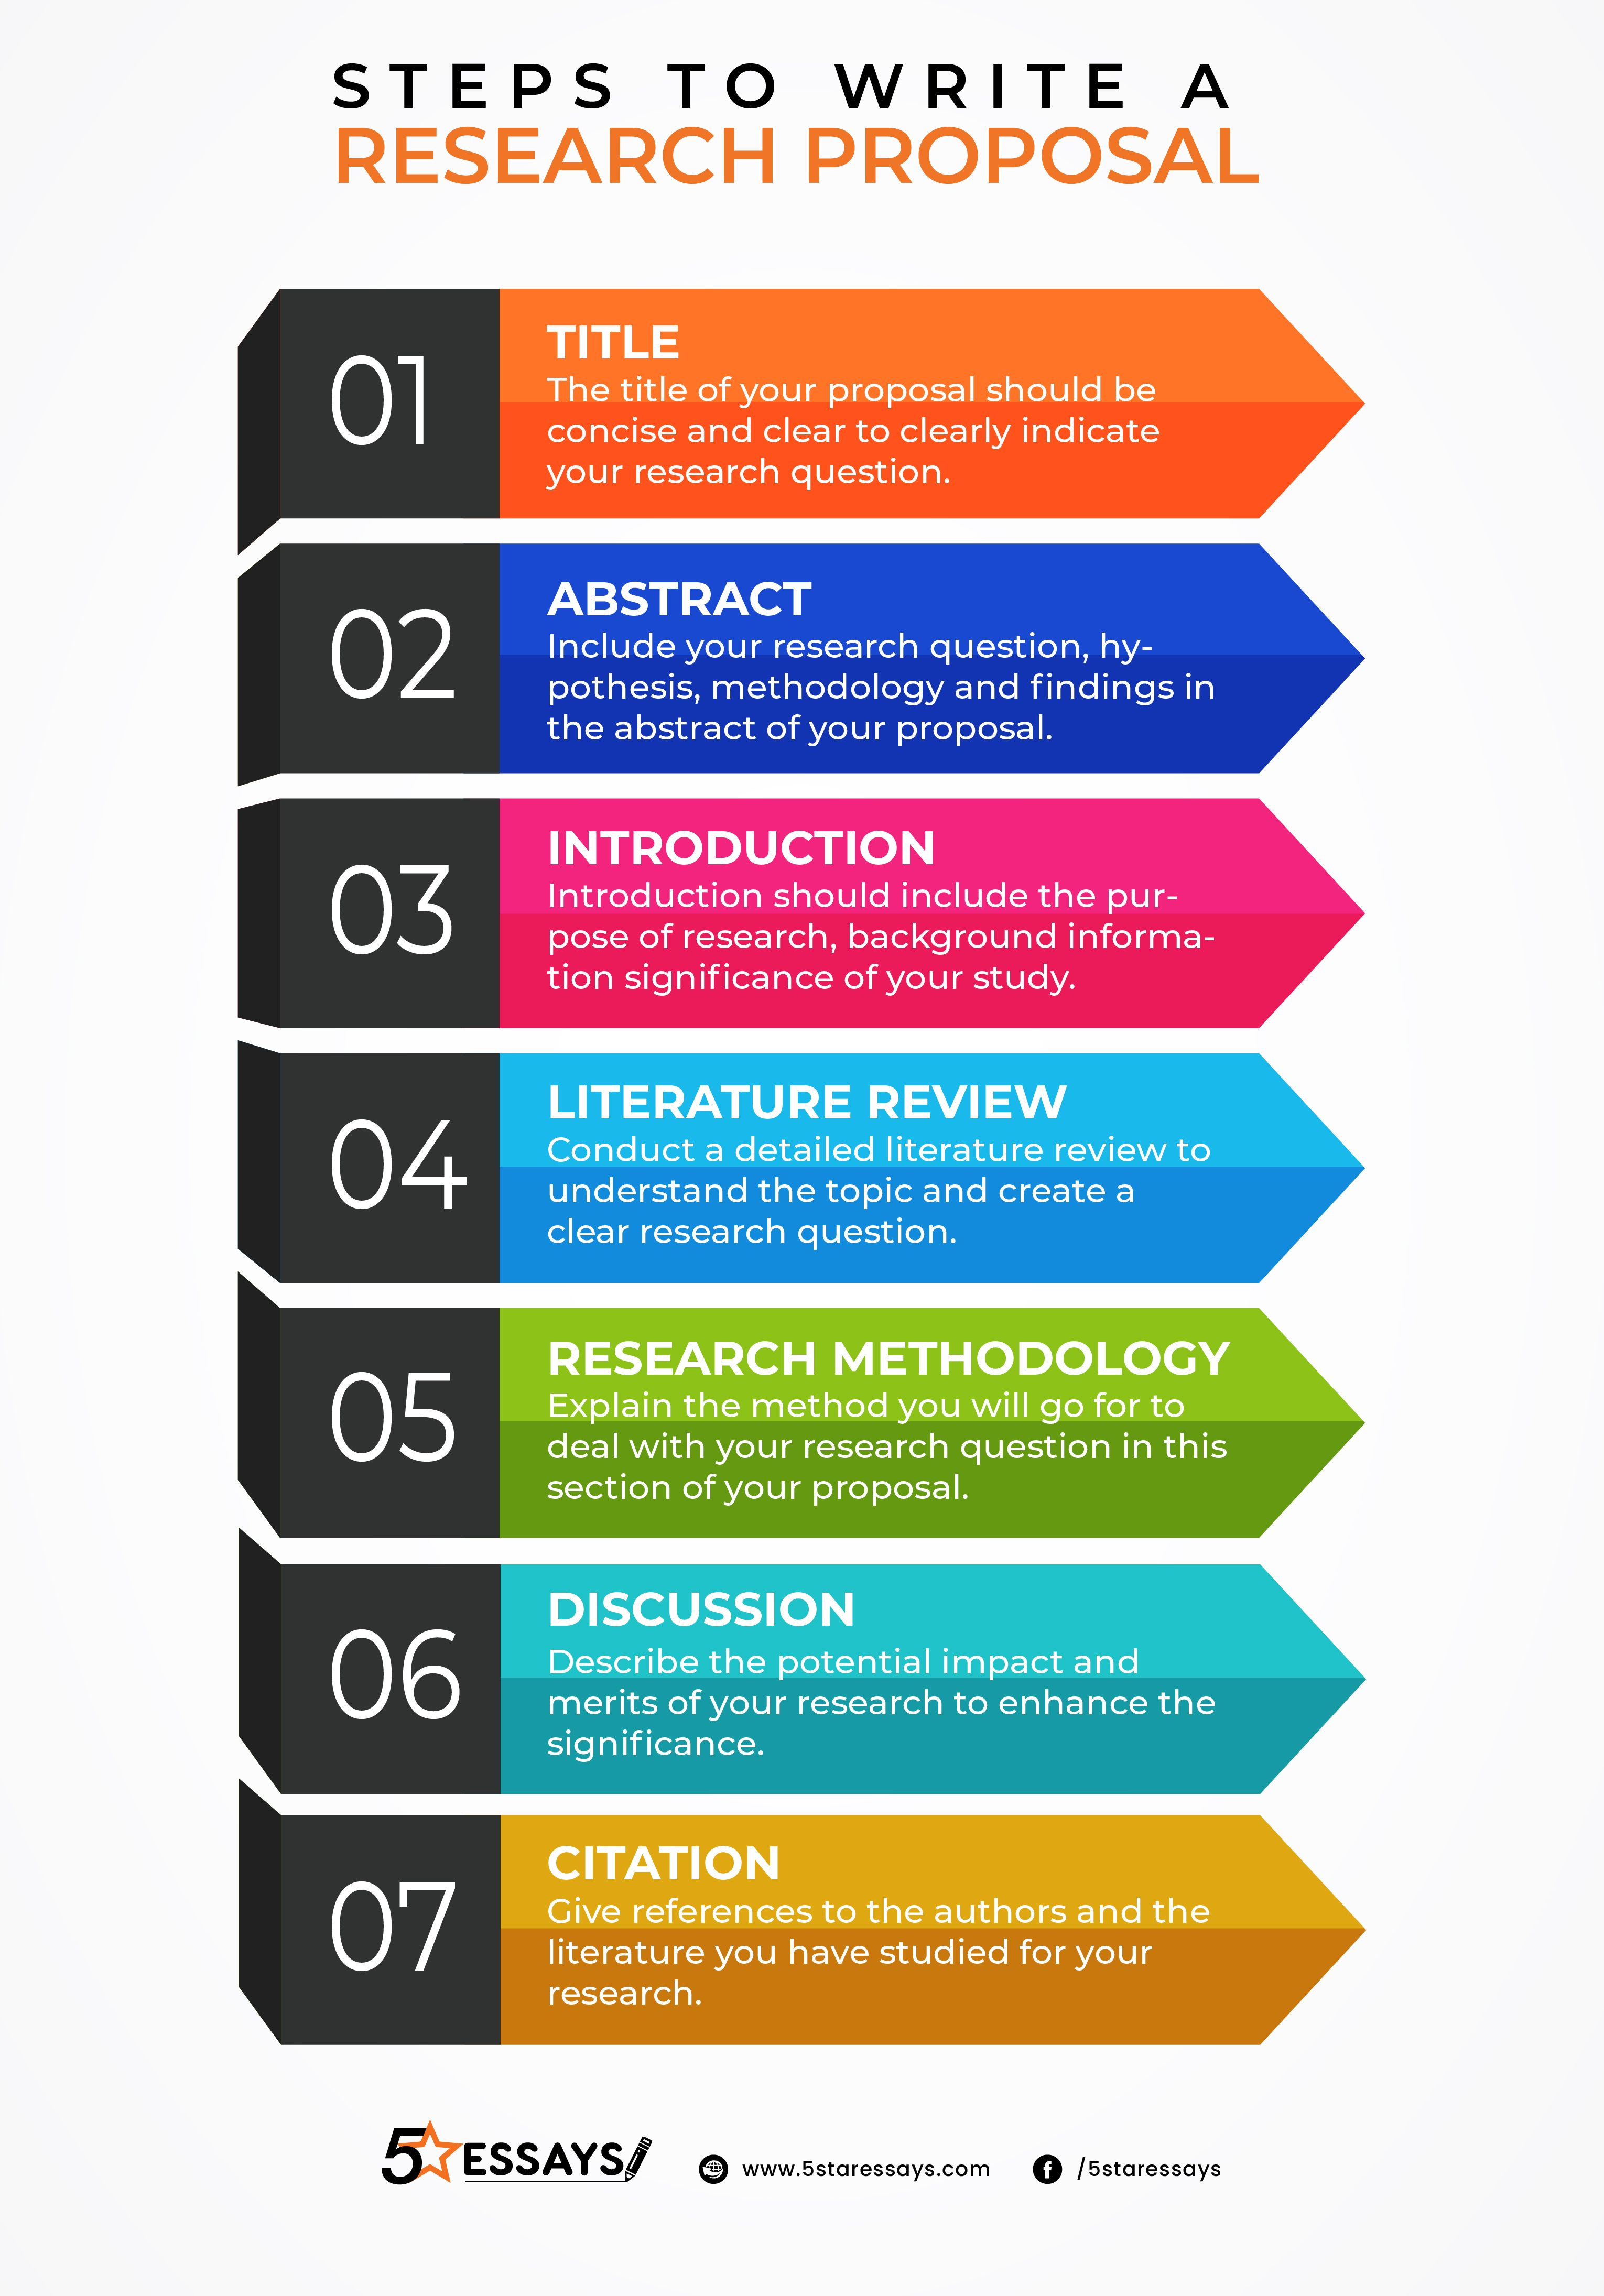 Research Proposal Infographic Writing A Scientific Good Question For Dissertations